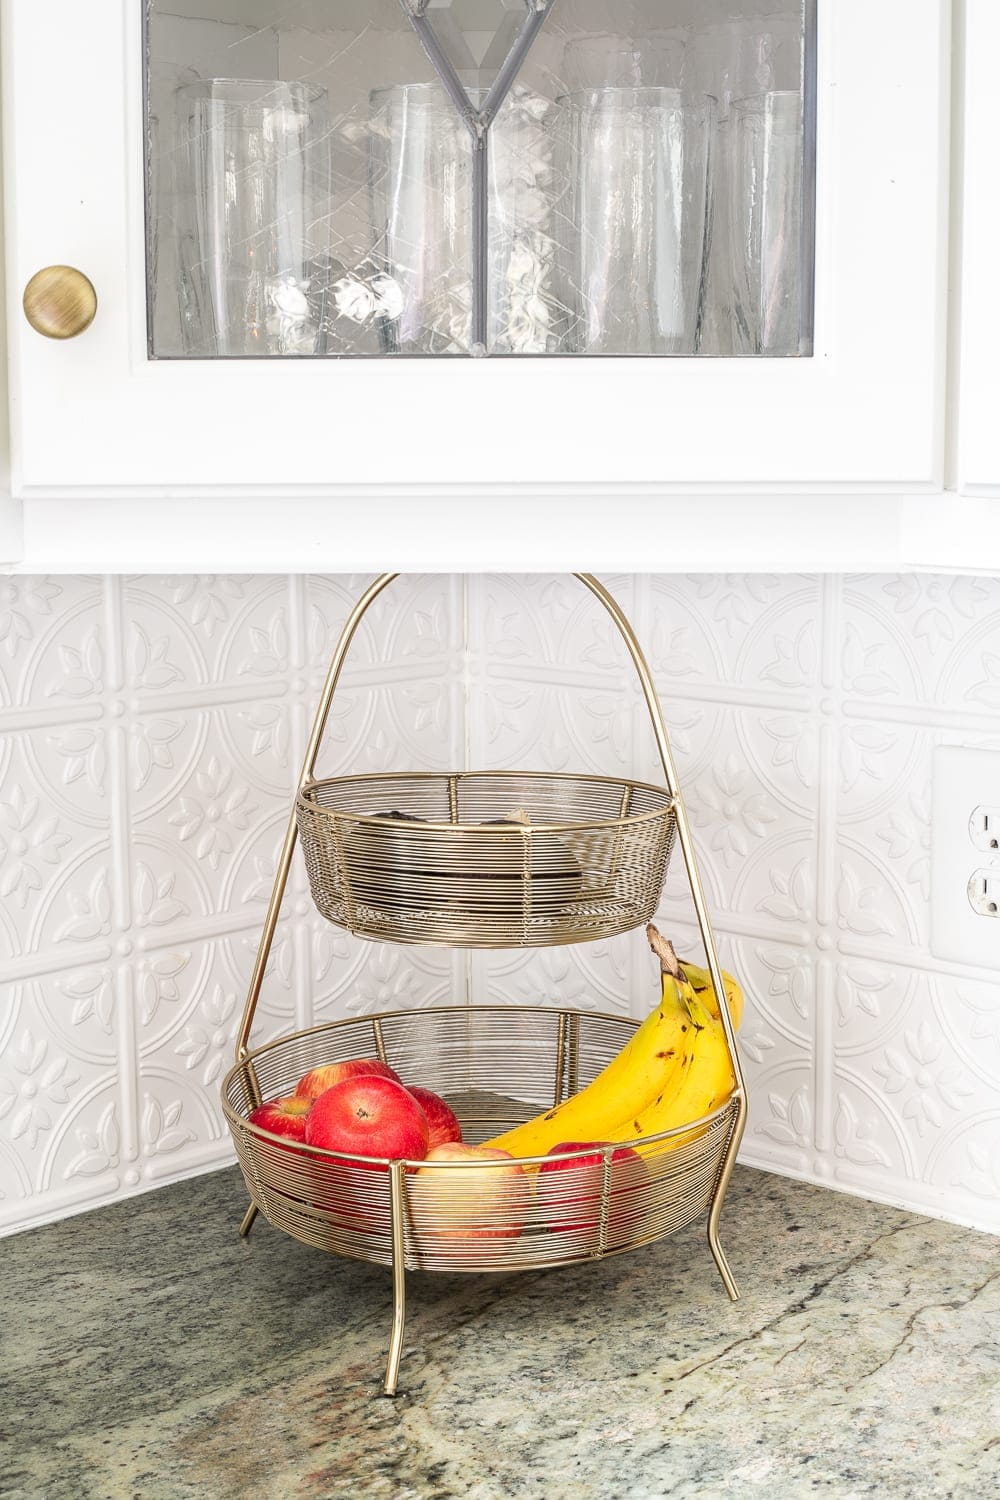 tiered basket for holding fruit on a kitchen countertop